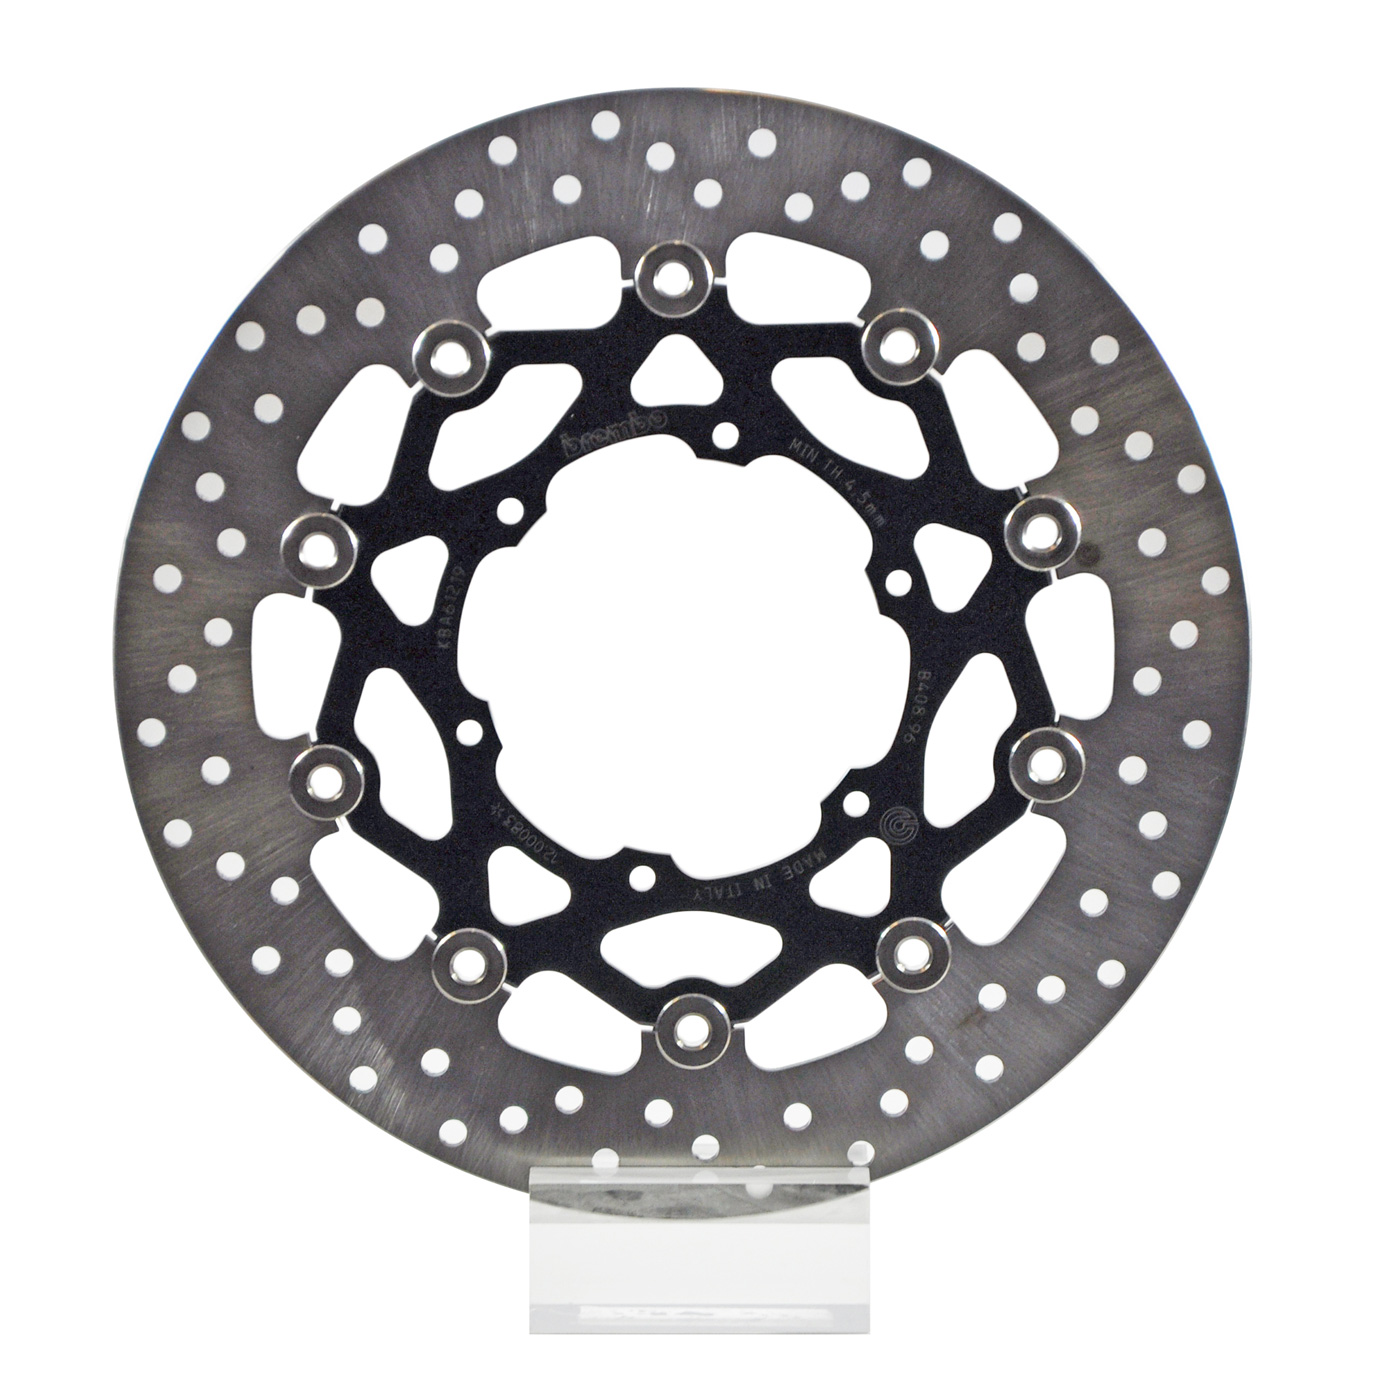 Brembo Serie Oro Brake Rotor 78B40896, one (1) Floating Front Disk, dim   300x105 mm